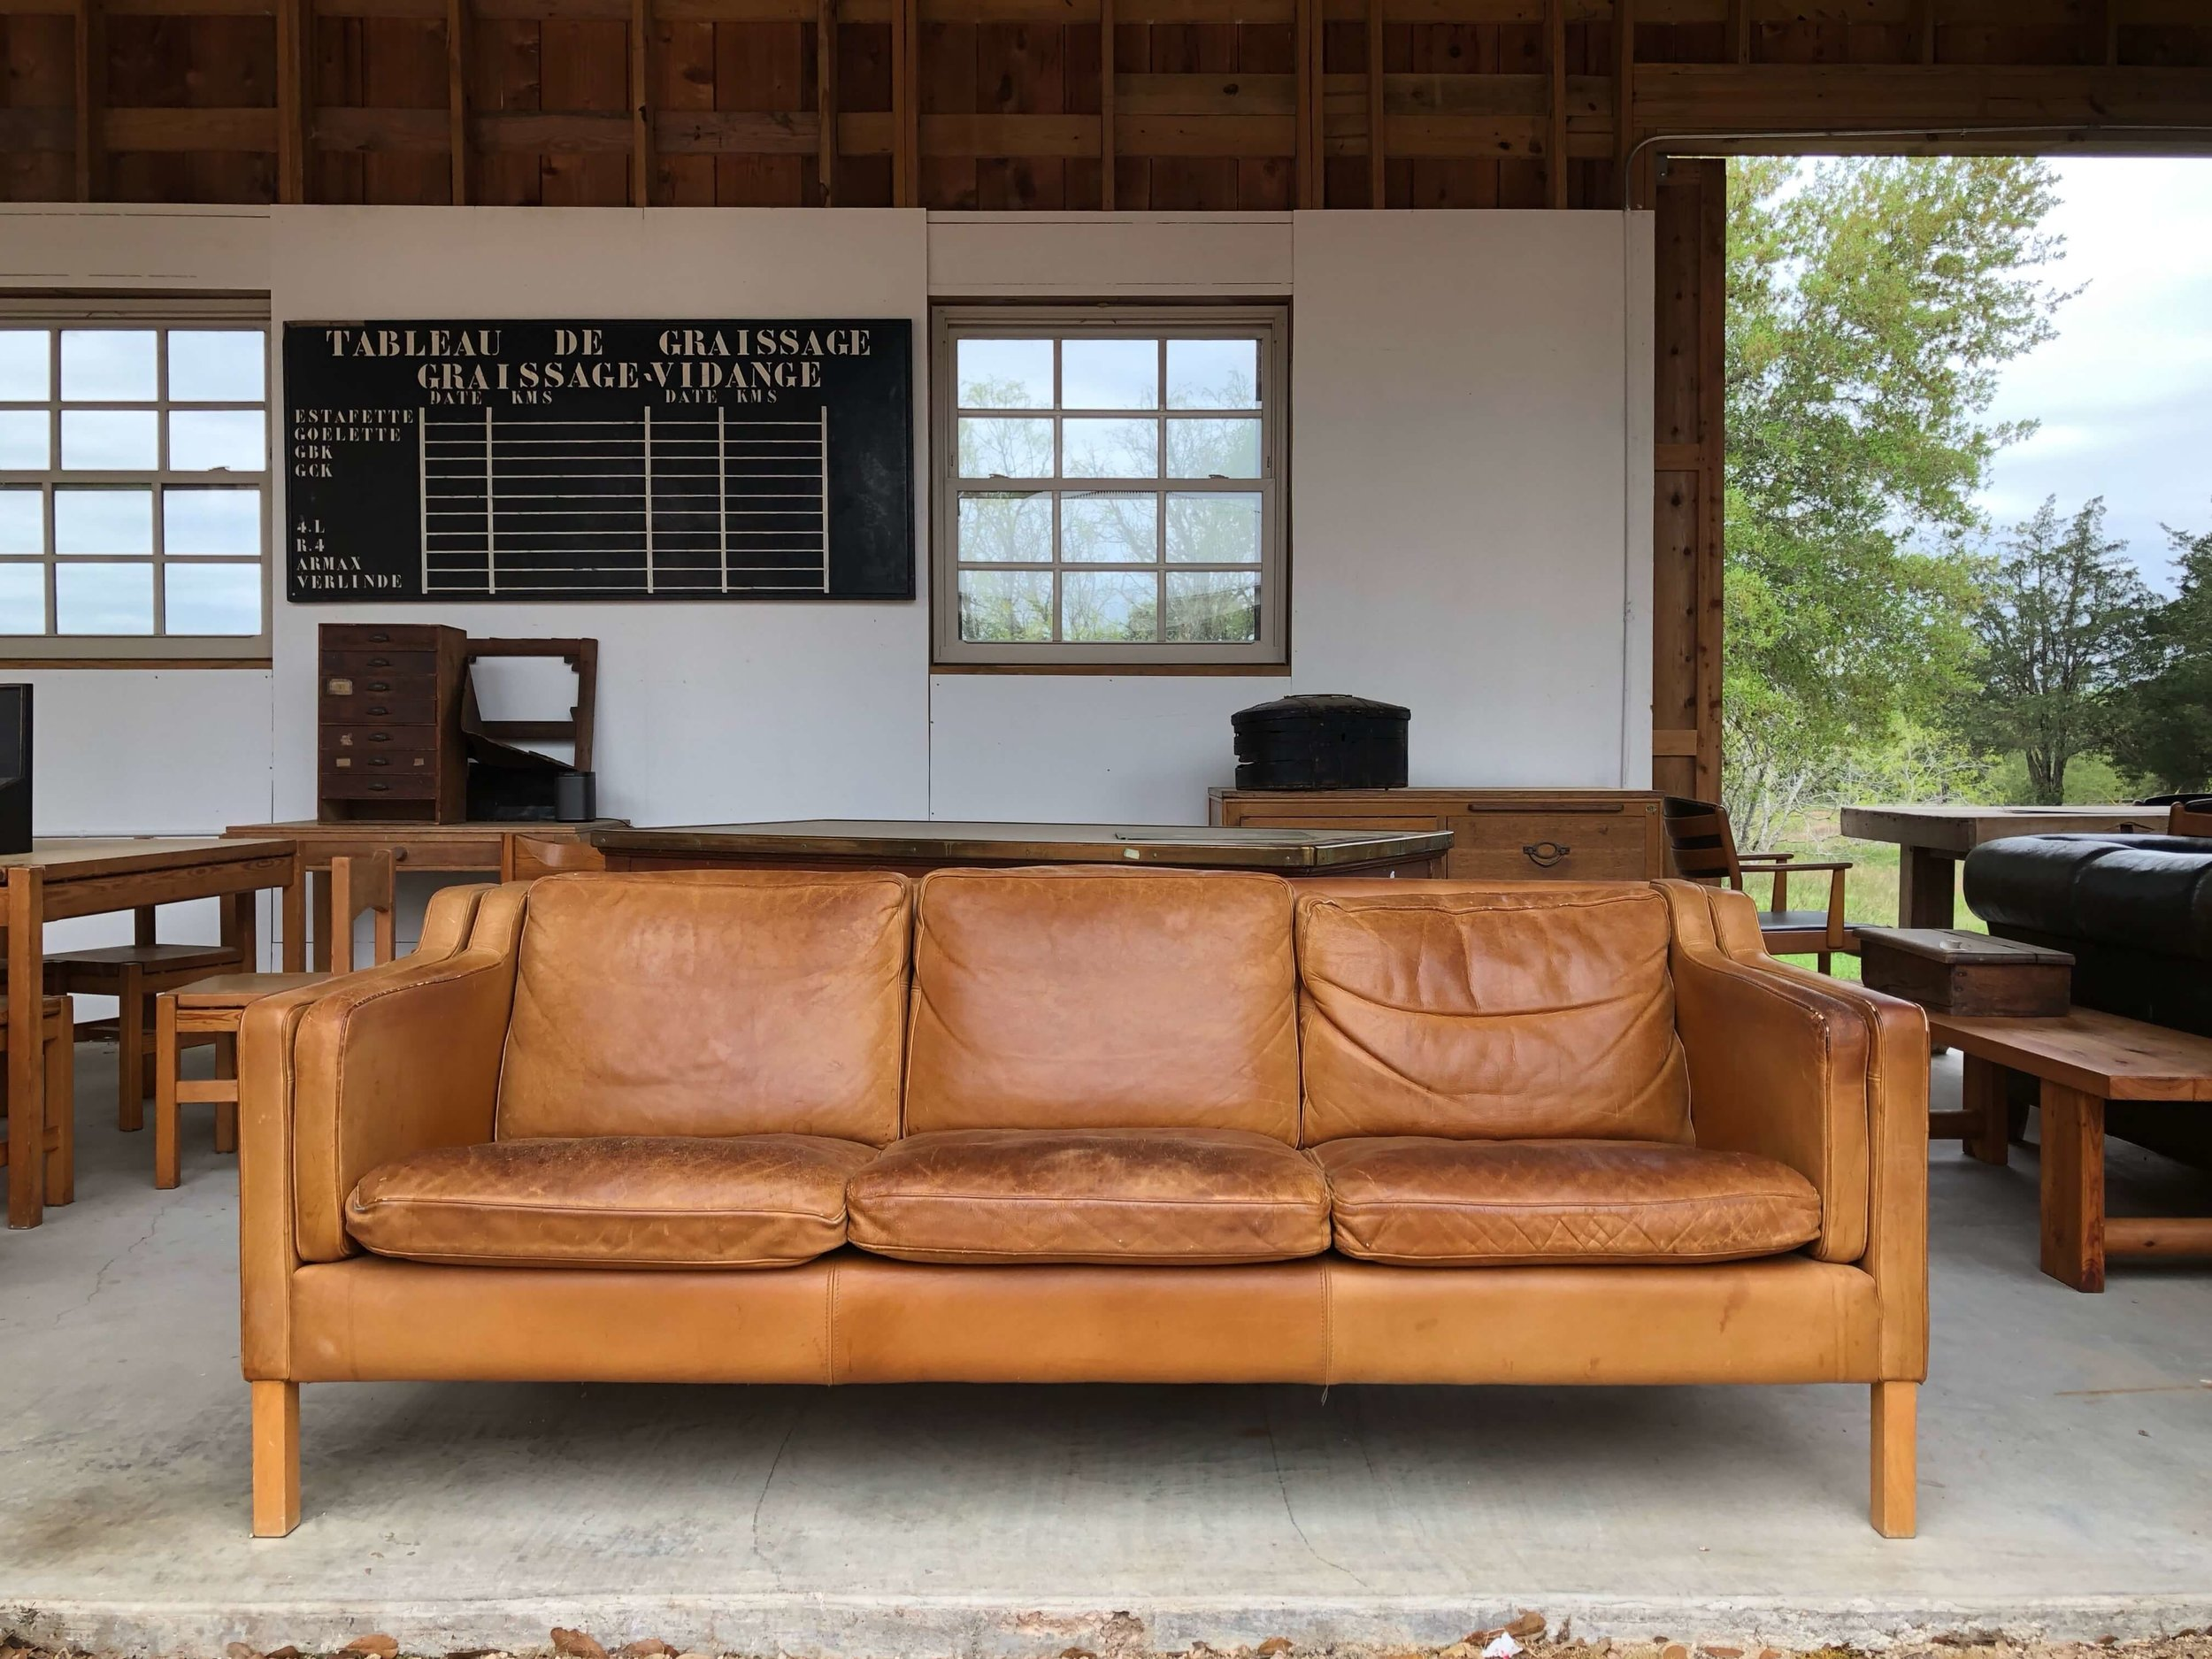 Vintage leather sofa |Eneby Home, The Compound, Round Top Antiques Fair